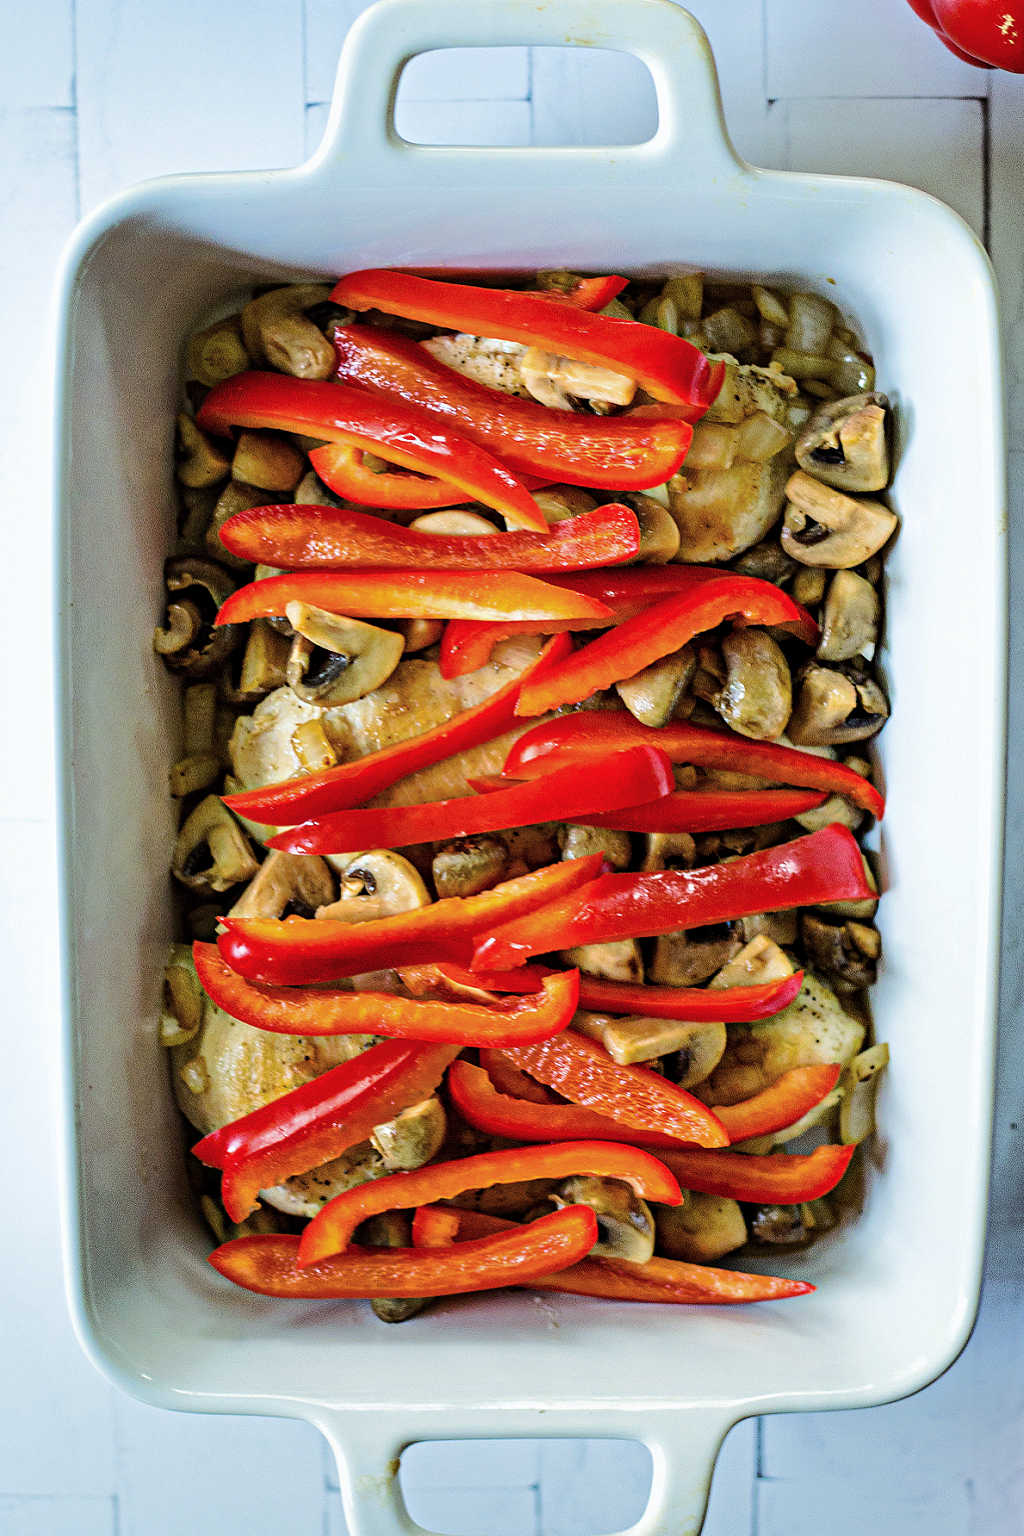 uncooked chicken breast with red bell peppers in a white baking dish on a table